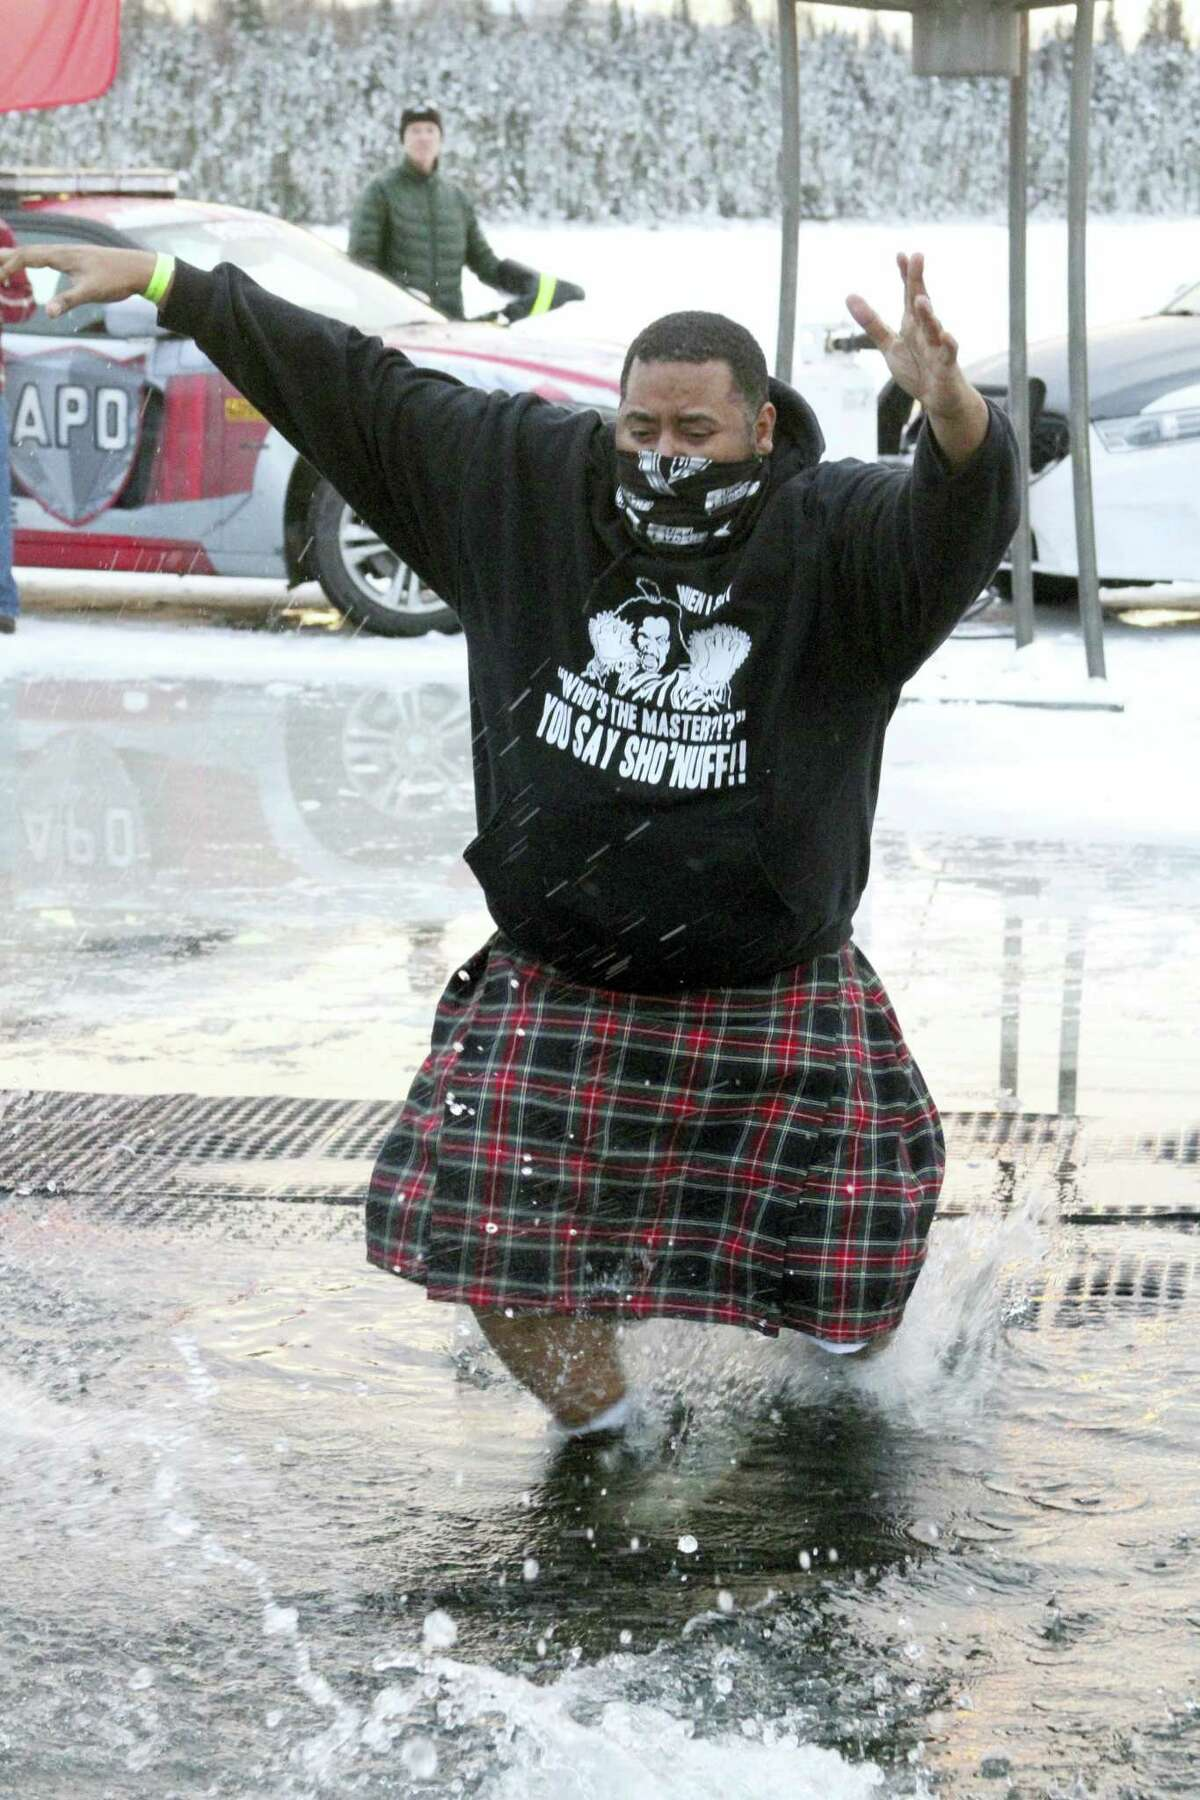 Maceo Garcia takes part in a polar plunge fundraiser at Goose Lake Saturday, Dec. 17, 2016, in Anchorage, Alaska. The plunge was a benefit for Special Olympics Alaska, and has raised more than $2 million for the organization in the eight years it has been held. (AP Photo/Mark Thiessen)